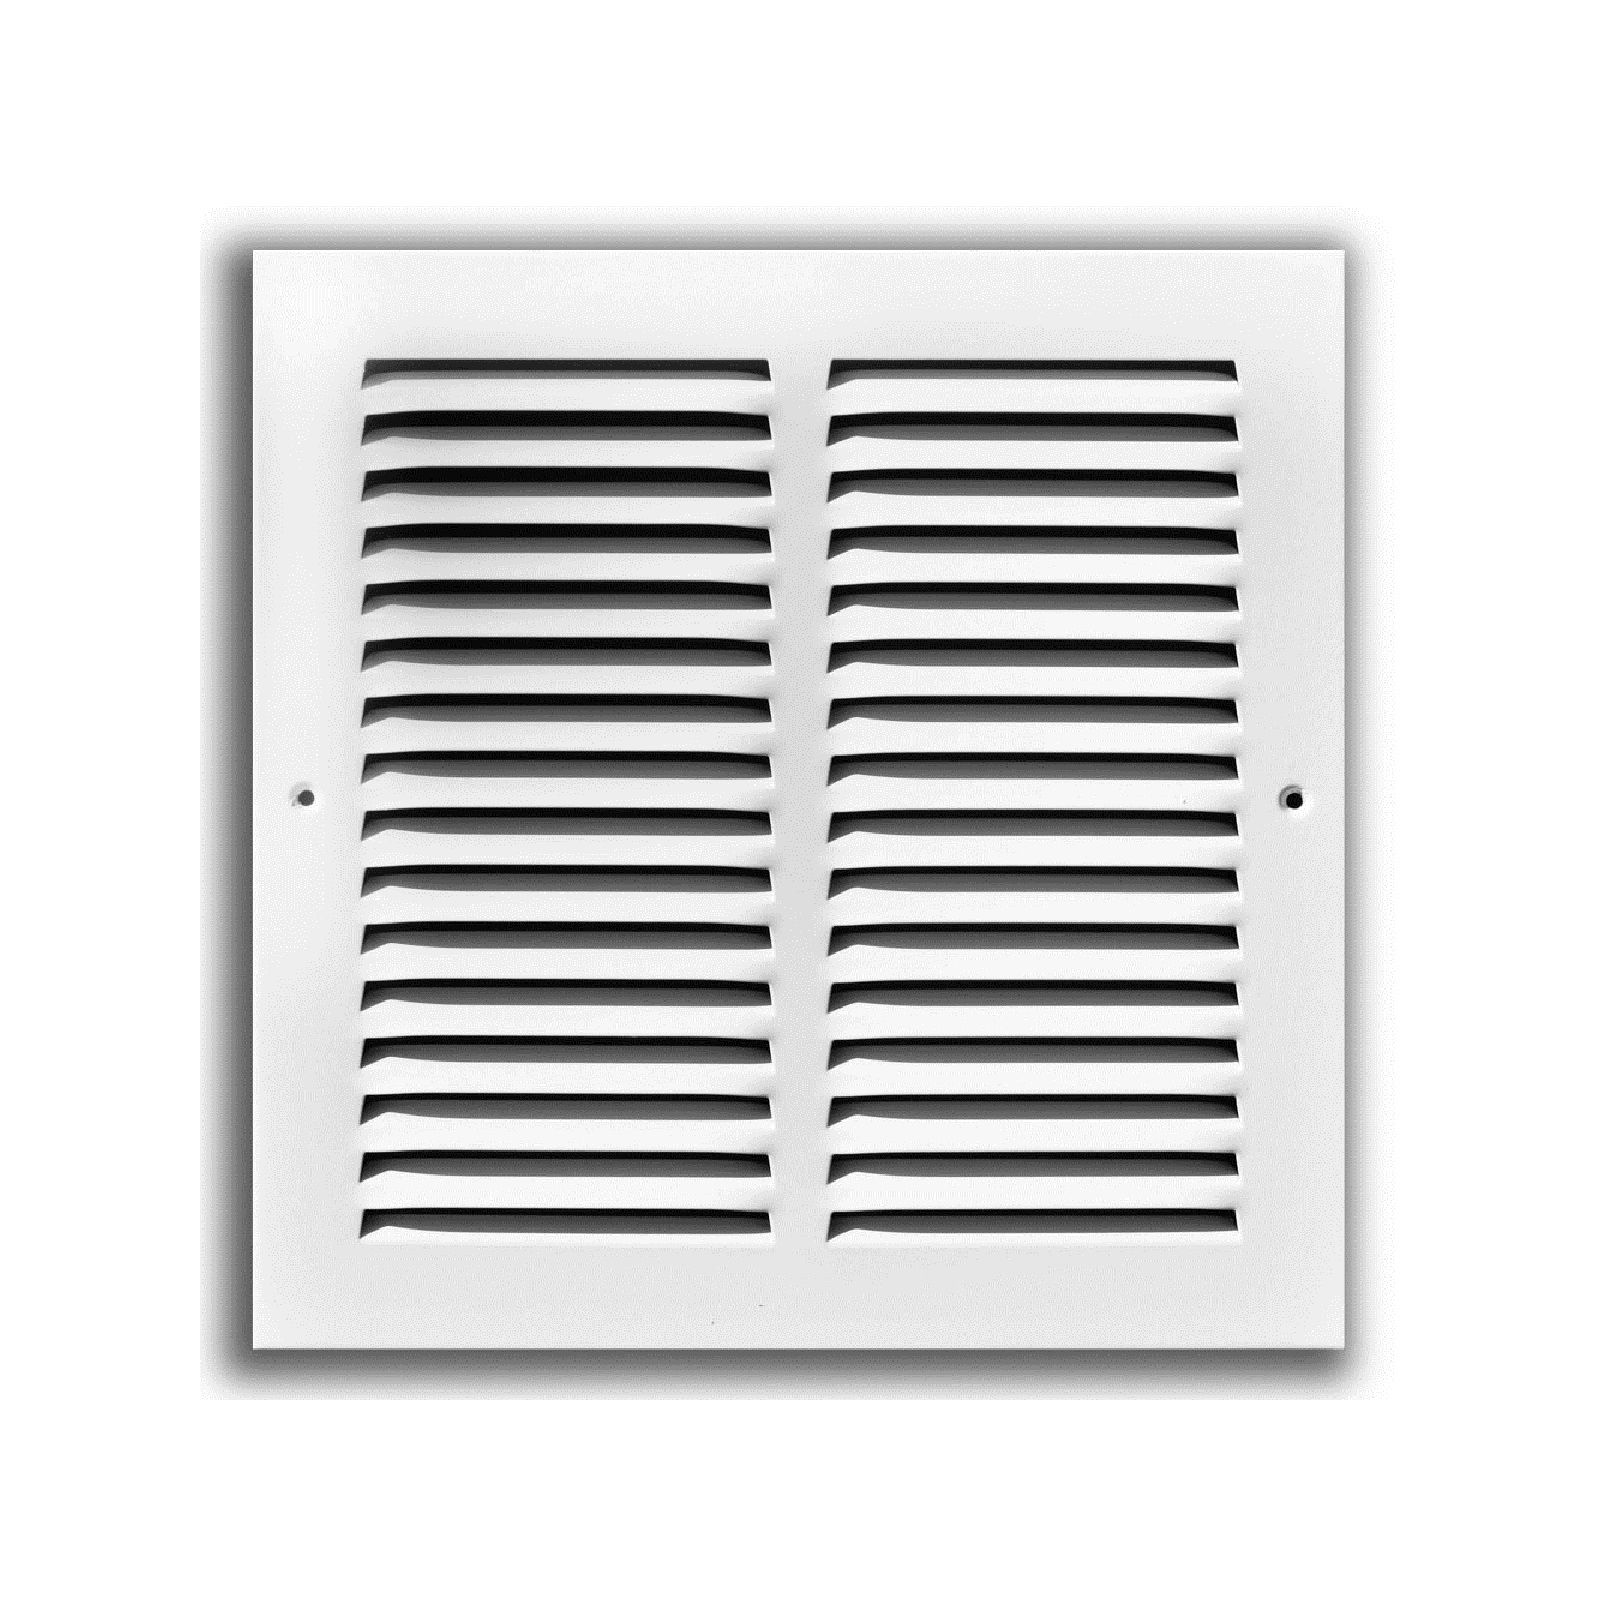 "TRUaire 170 10X14 - Steel Return Air Grille - 1/2"" Spaced Fin, White, 10"" X 14"""